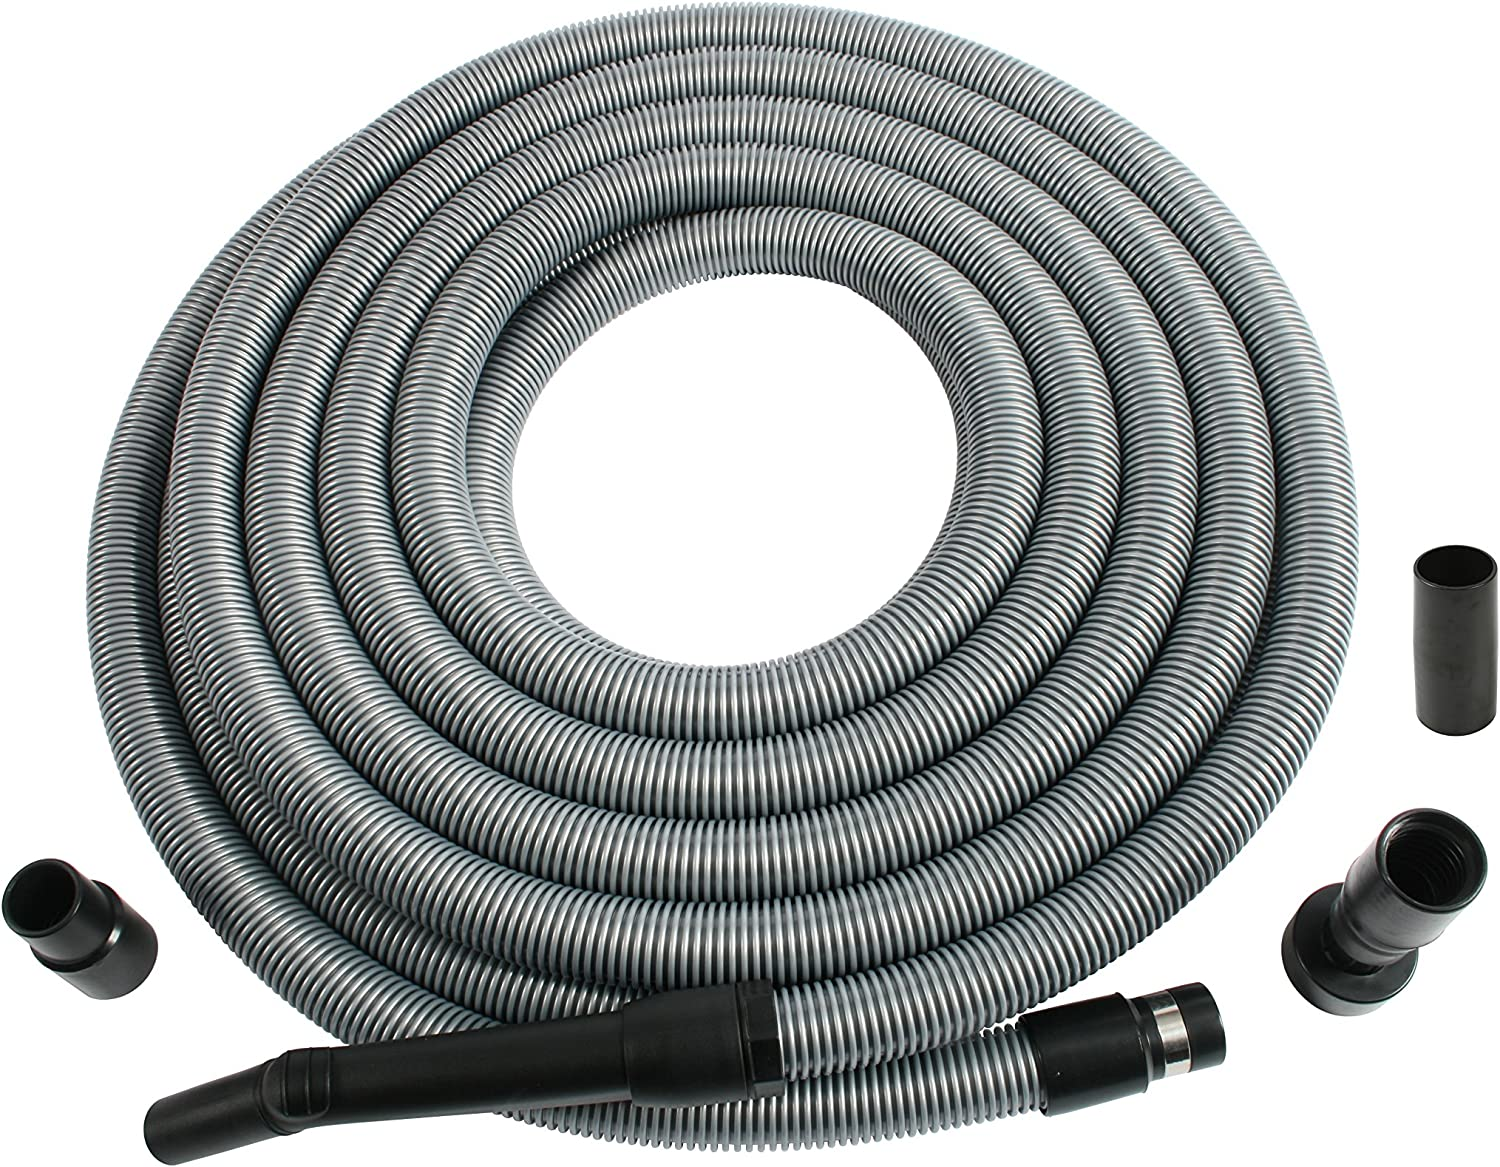 Cen-Tec Systems 95358 30 Foot Extension Hose for Shop and Garage Vacuums Silver Ft